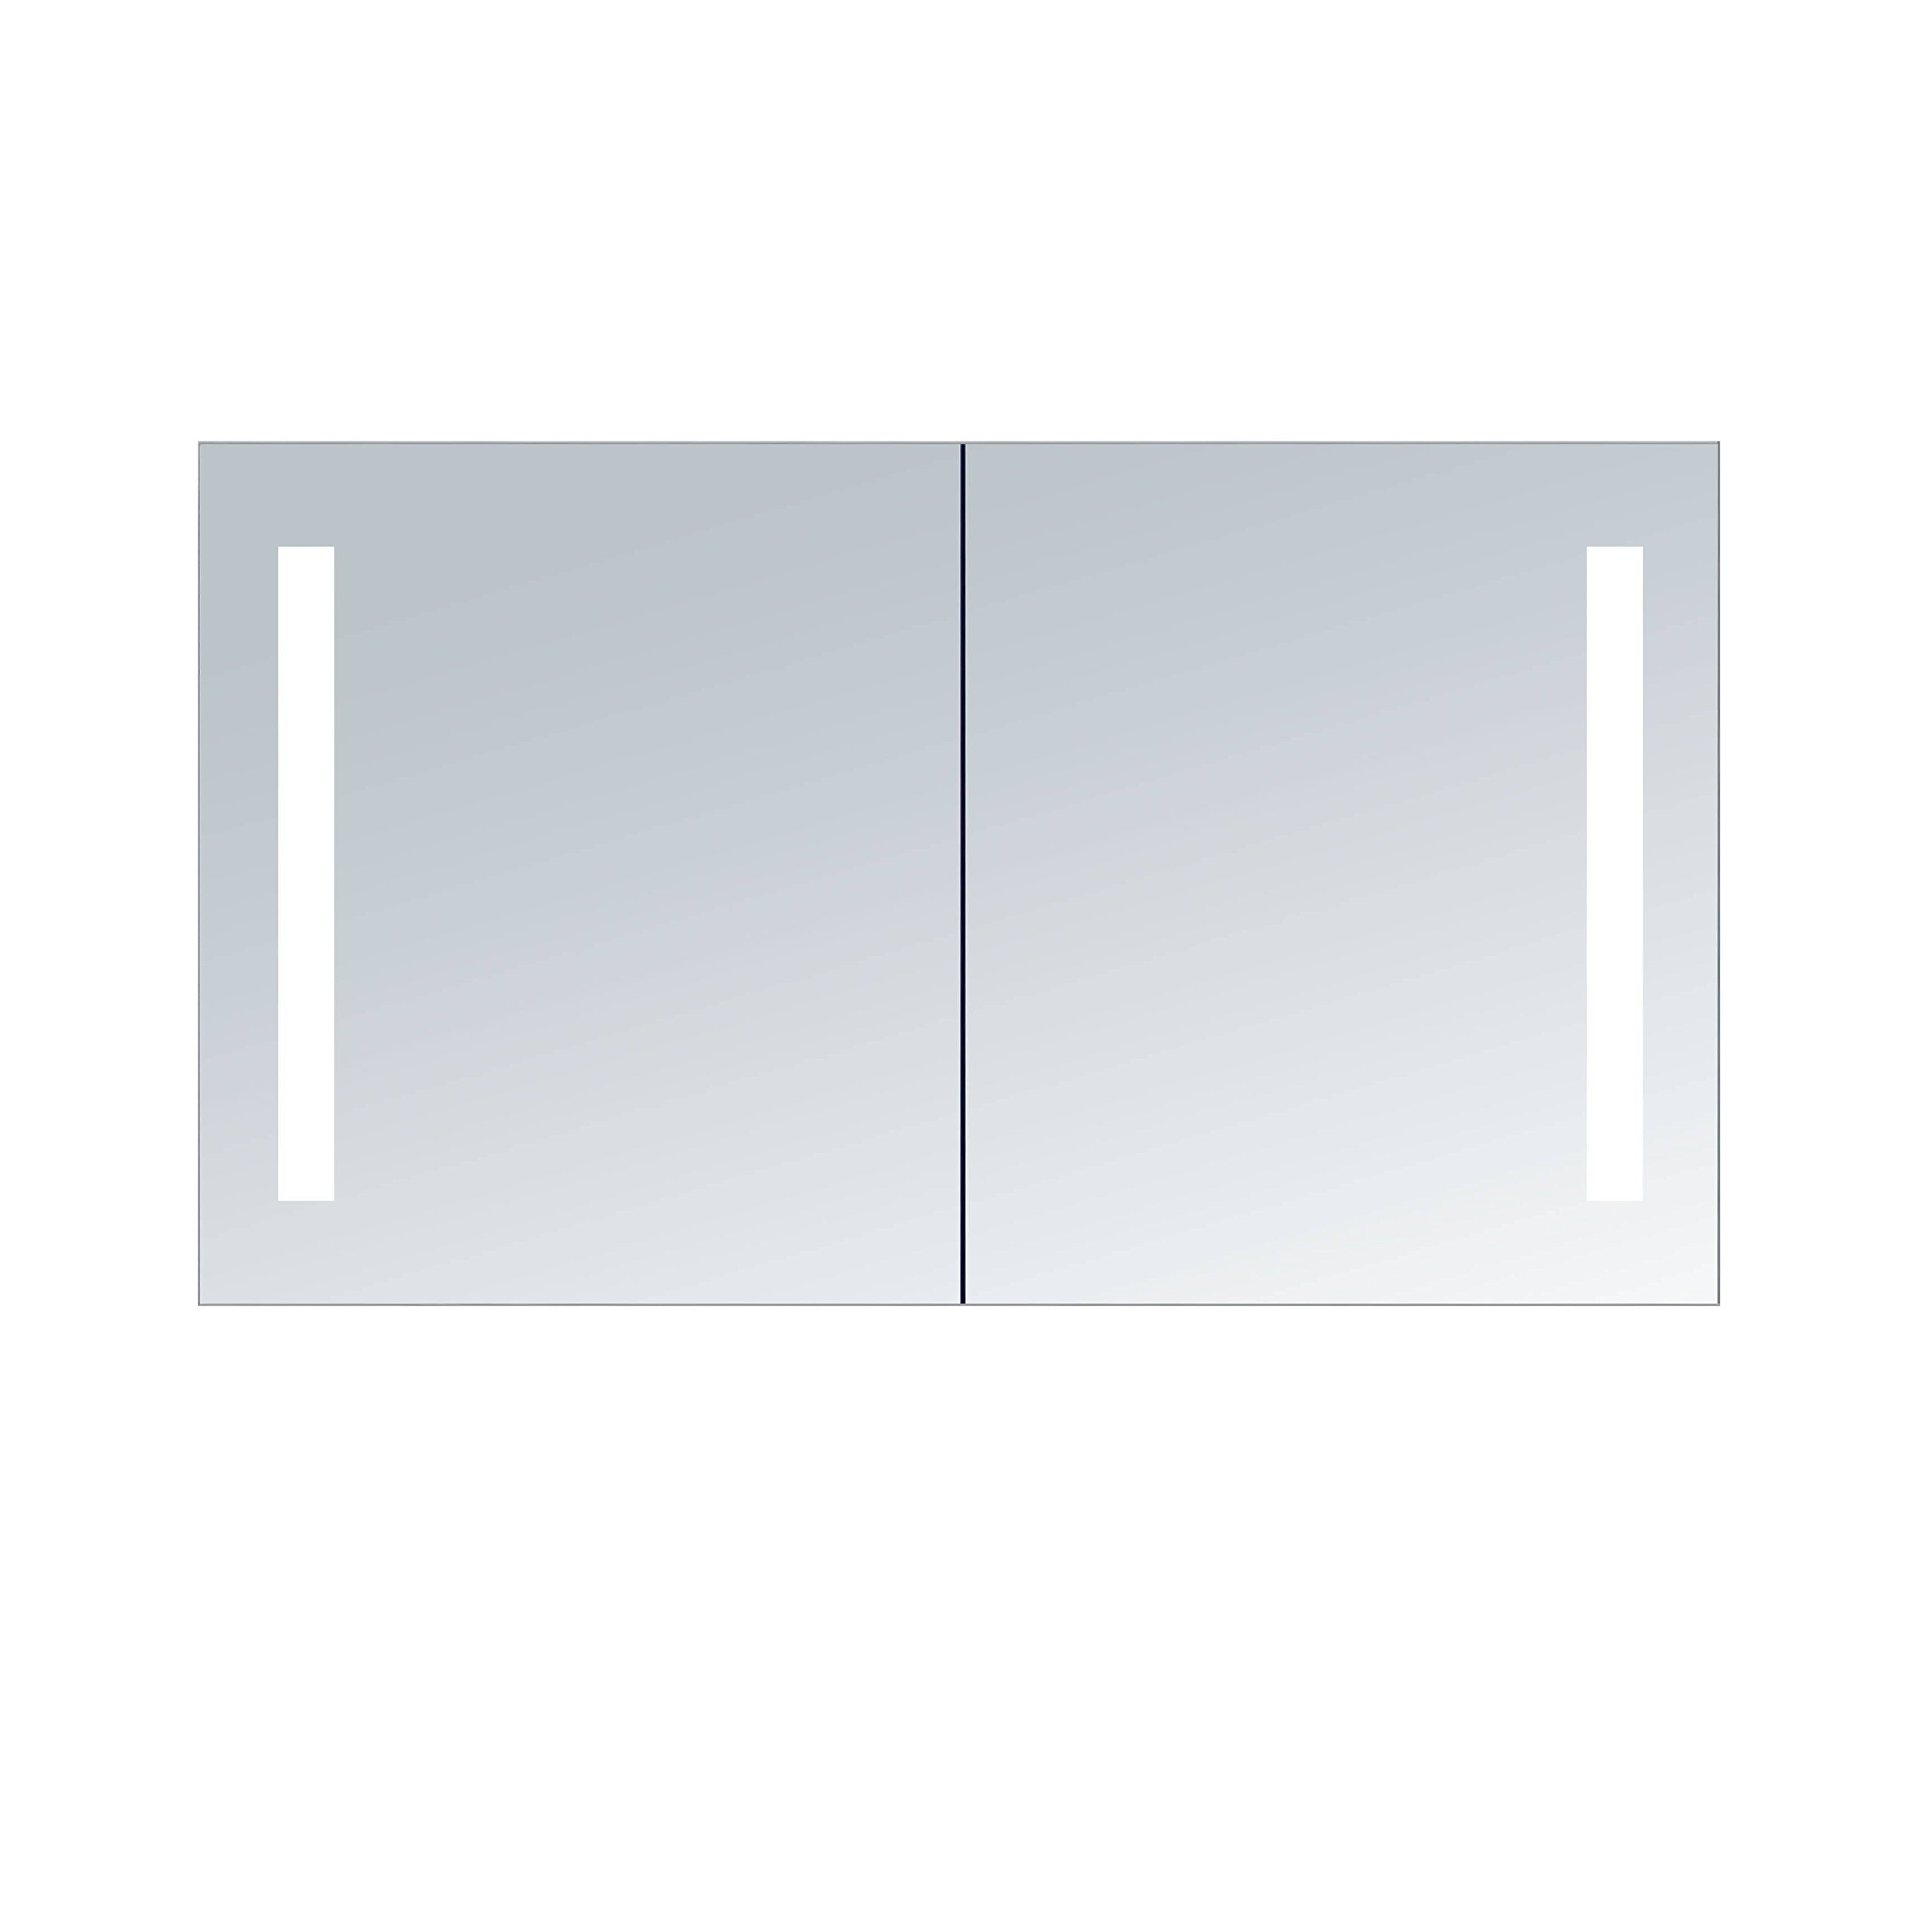 Innoci-USA Zeus LED Double Door Wall Mount Mirrored Lighted Medicine Cabinet Vanity Featuring IR Sensor, Tempered Glass Shelves and Rocker Switch 30'' x 26''